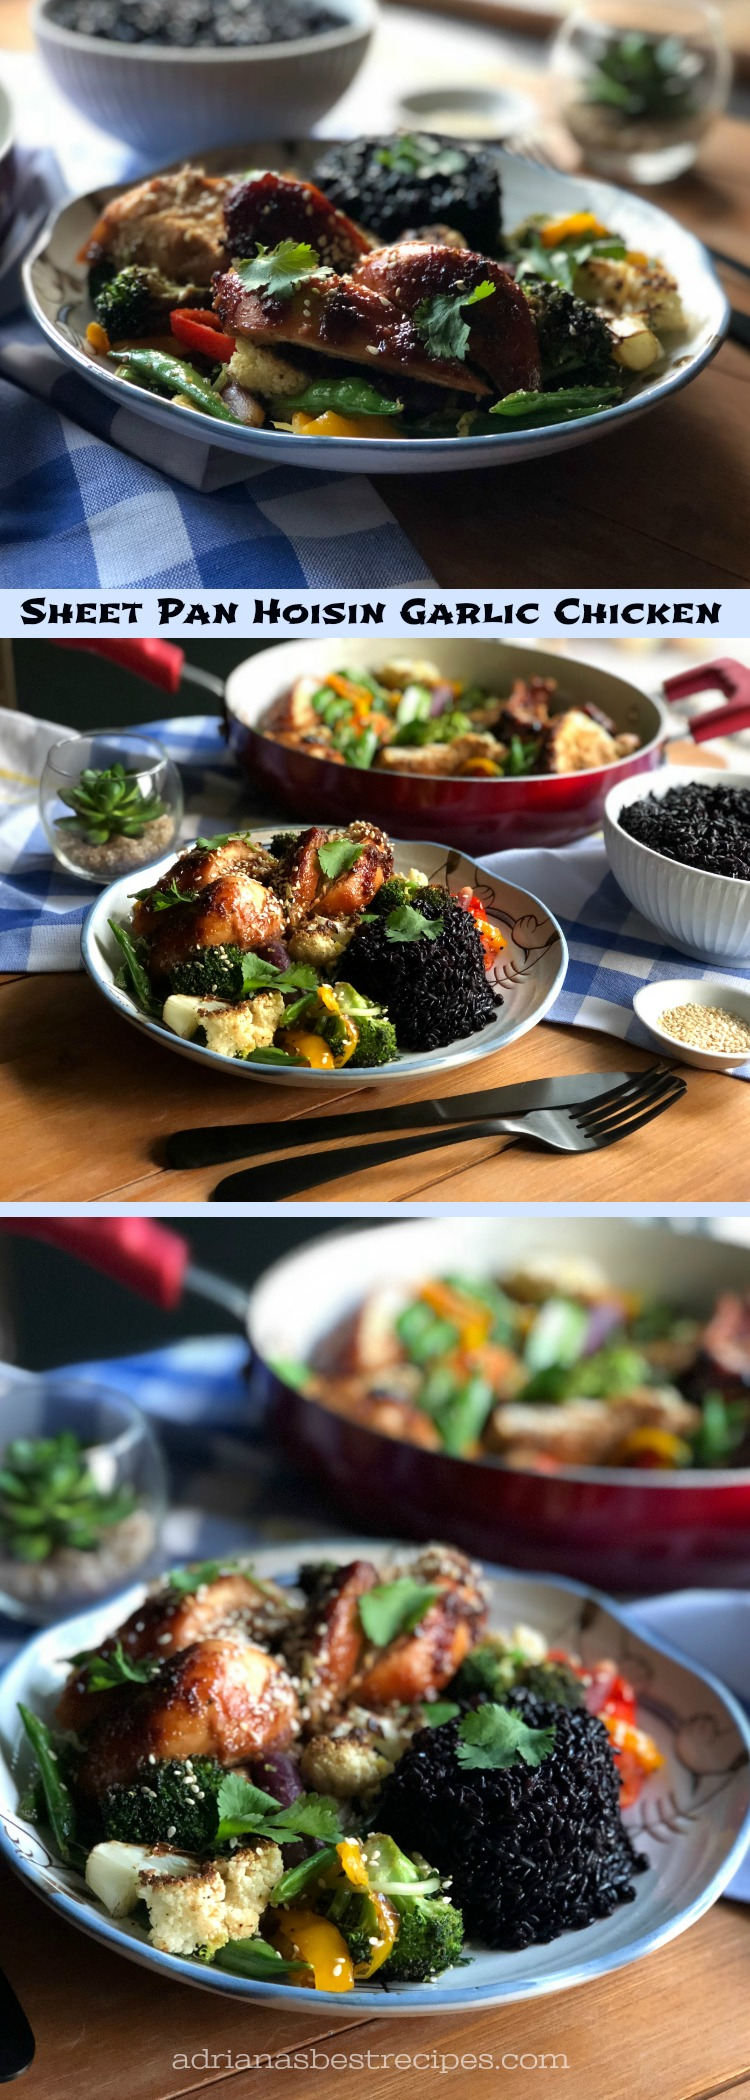 A sheet pan hoisin garlic chicken and veggies is my suggestion for celebrating this year's Chinese New Year, the year of the dog. This is a very simple dish made with chicken breasts and loaded with veggies. Served with delightful black rice.